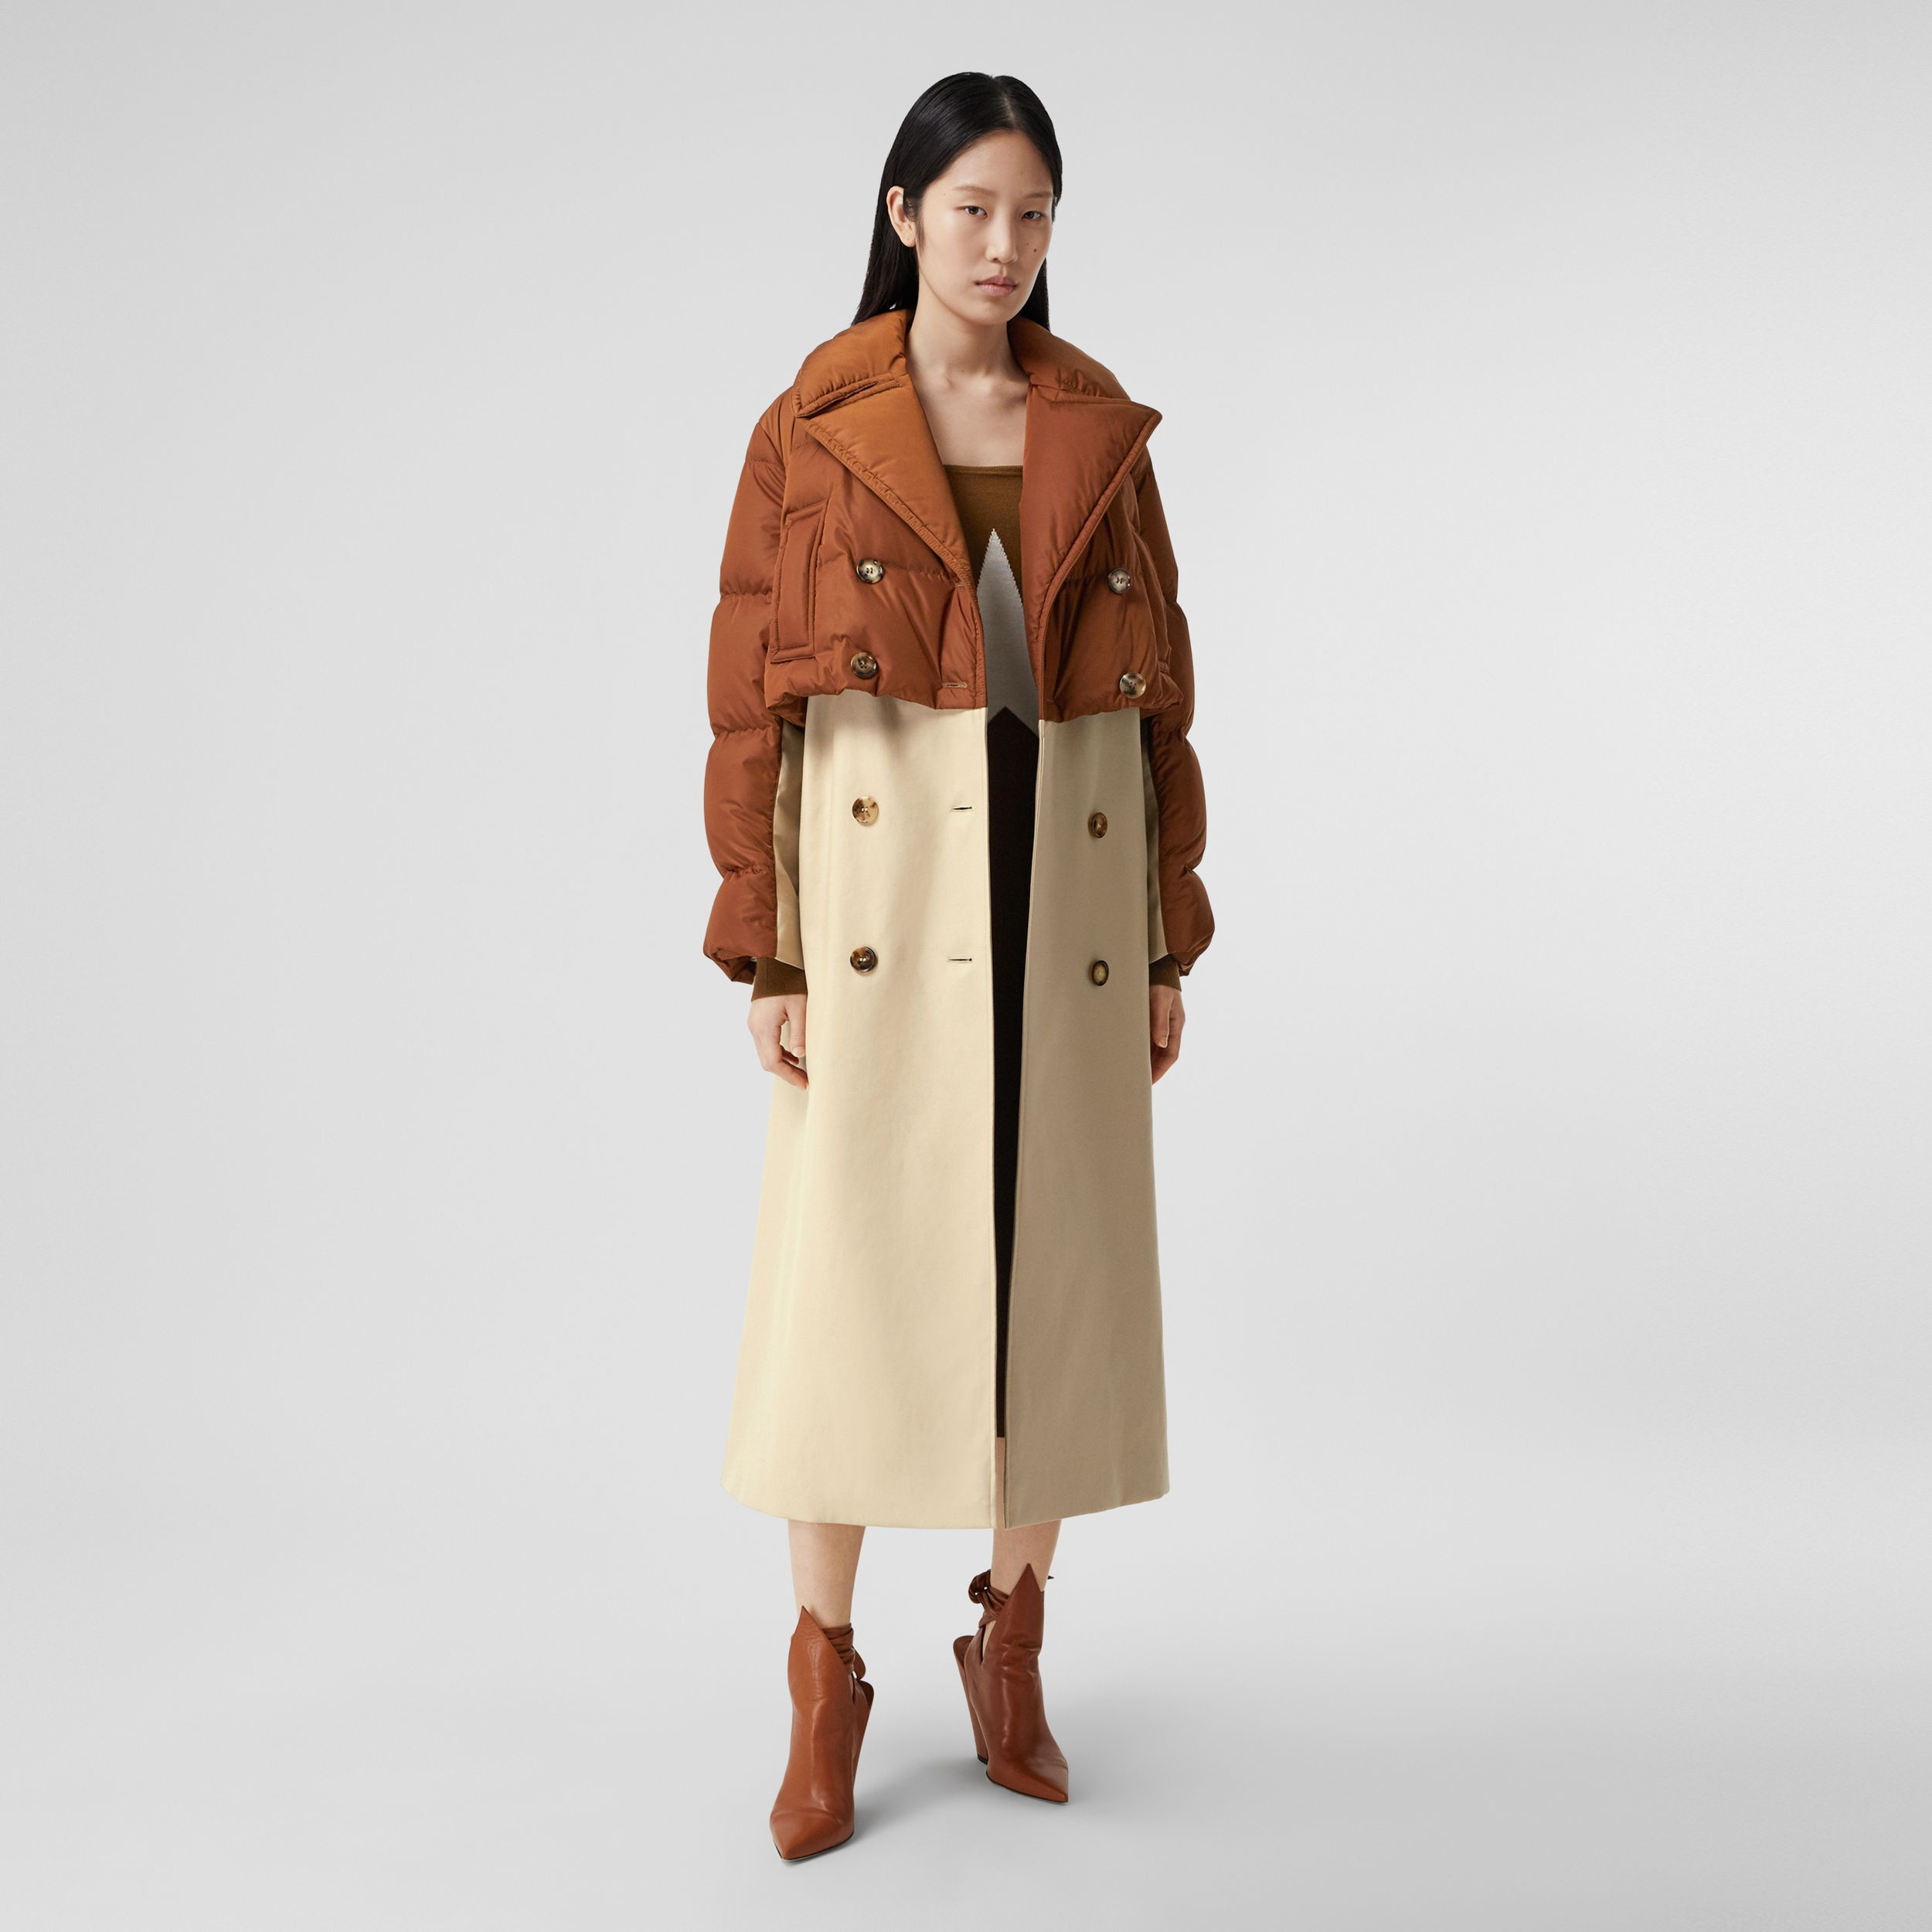 Puffer Jacket Detail Cotton Gabardine Trench Coat in Warm Brown - Women | Burberry Australia - 1